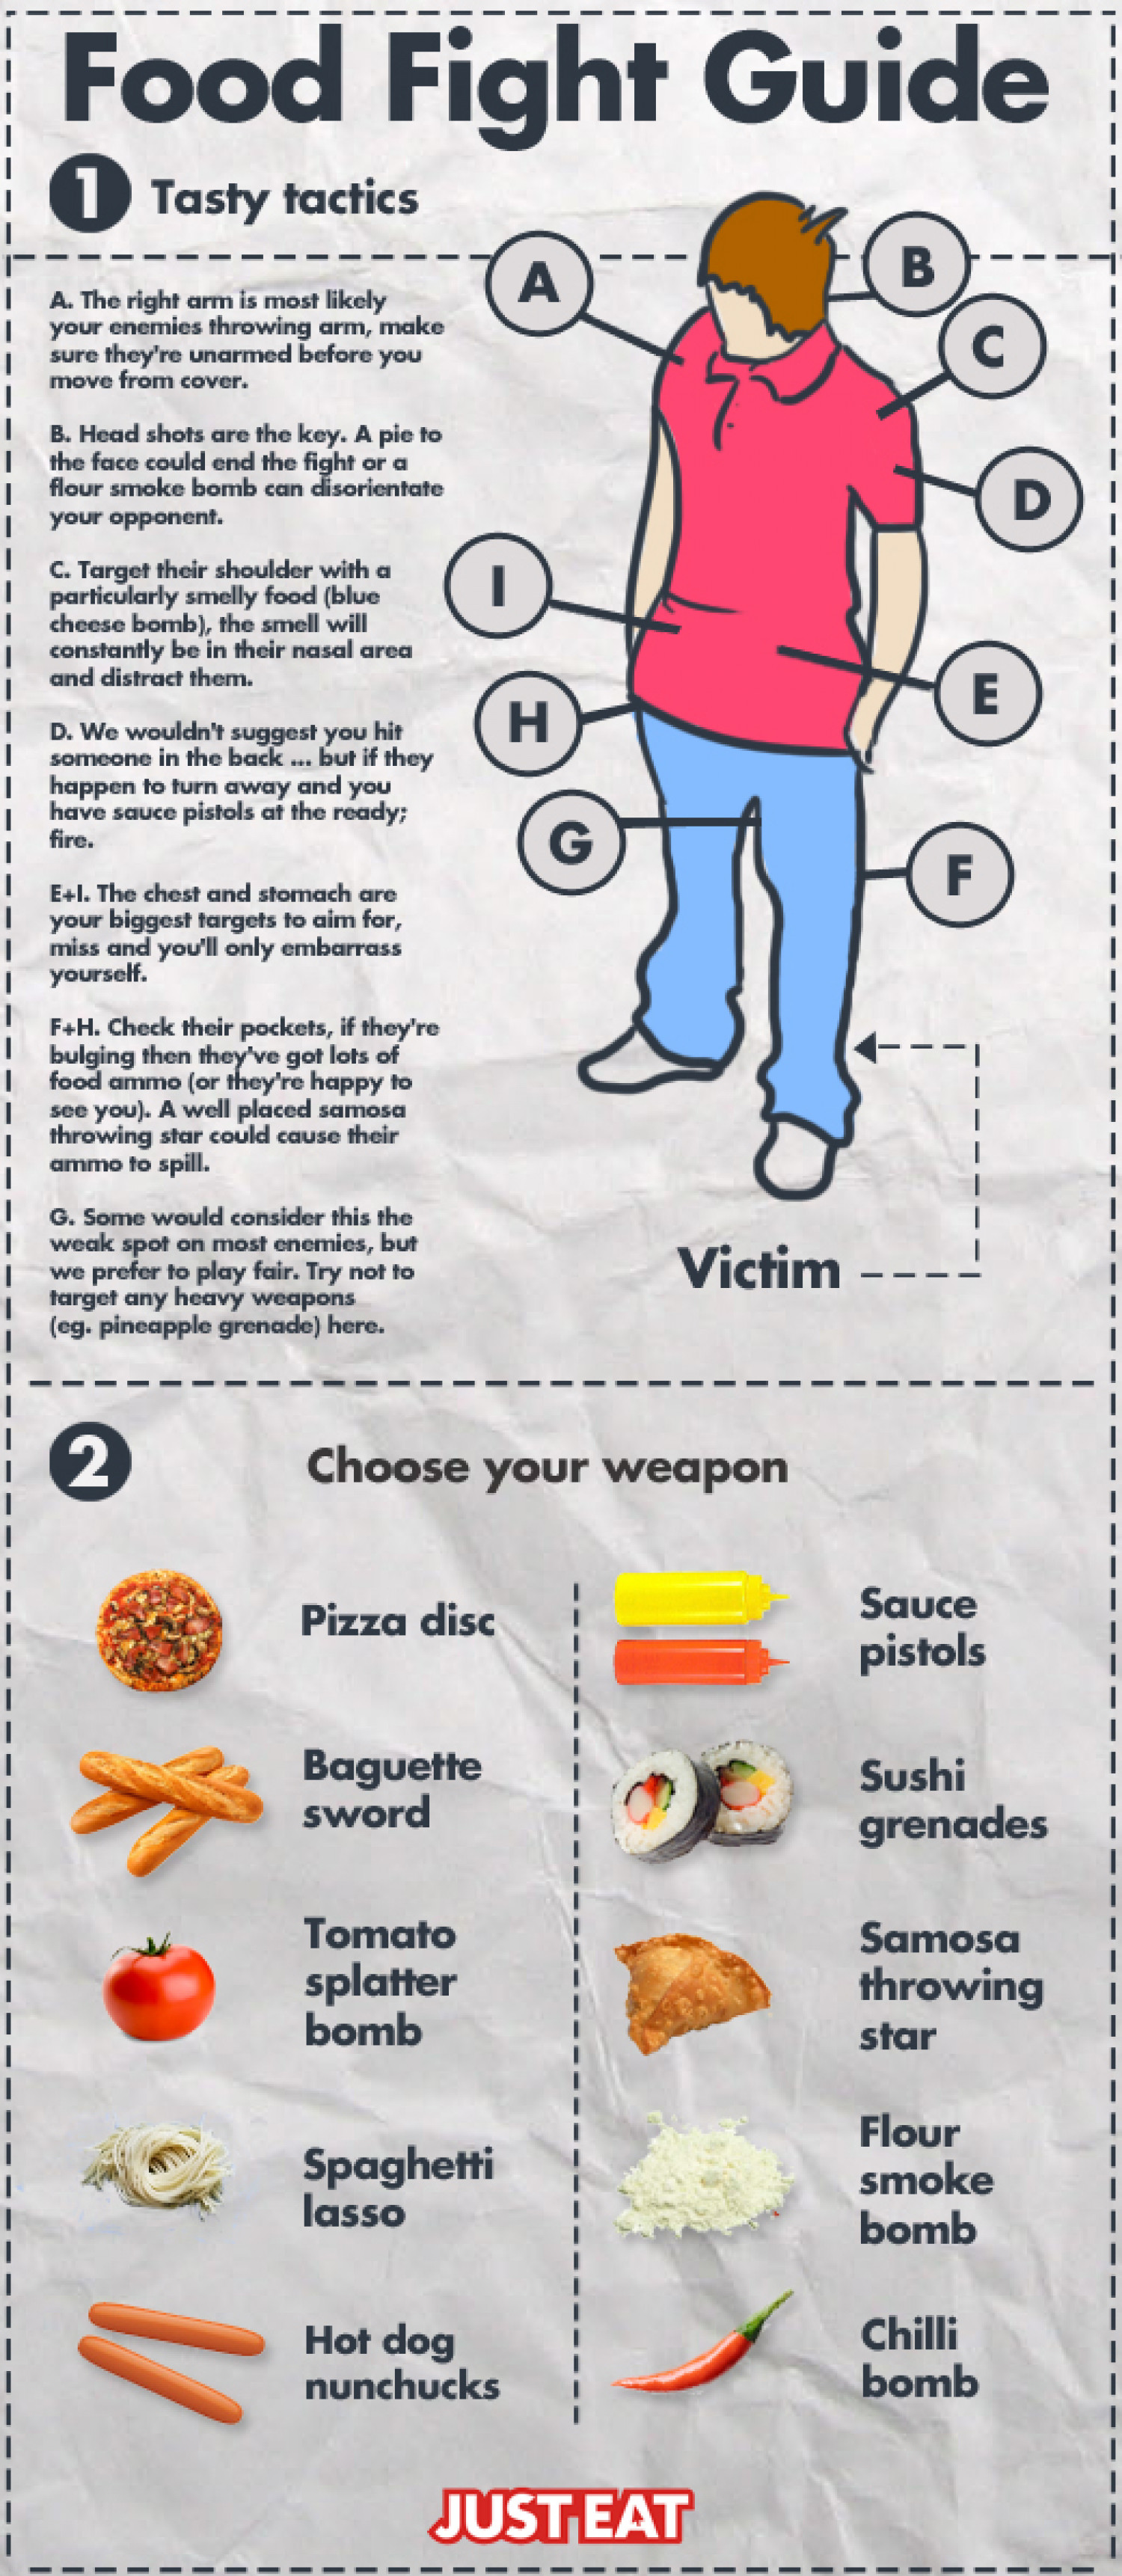 Food Fight Guide Infographic